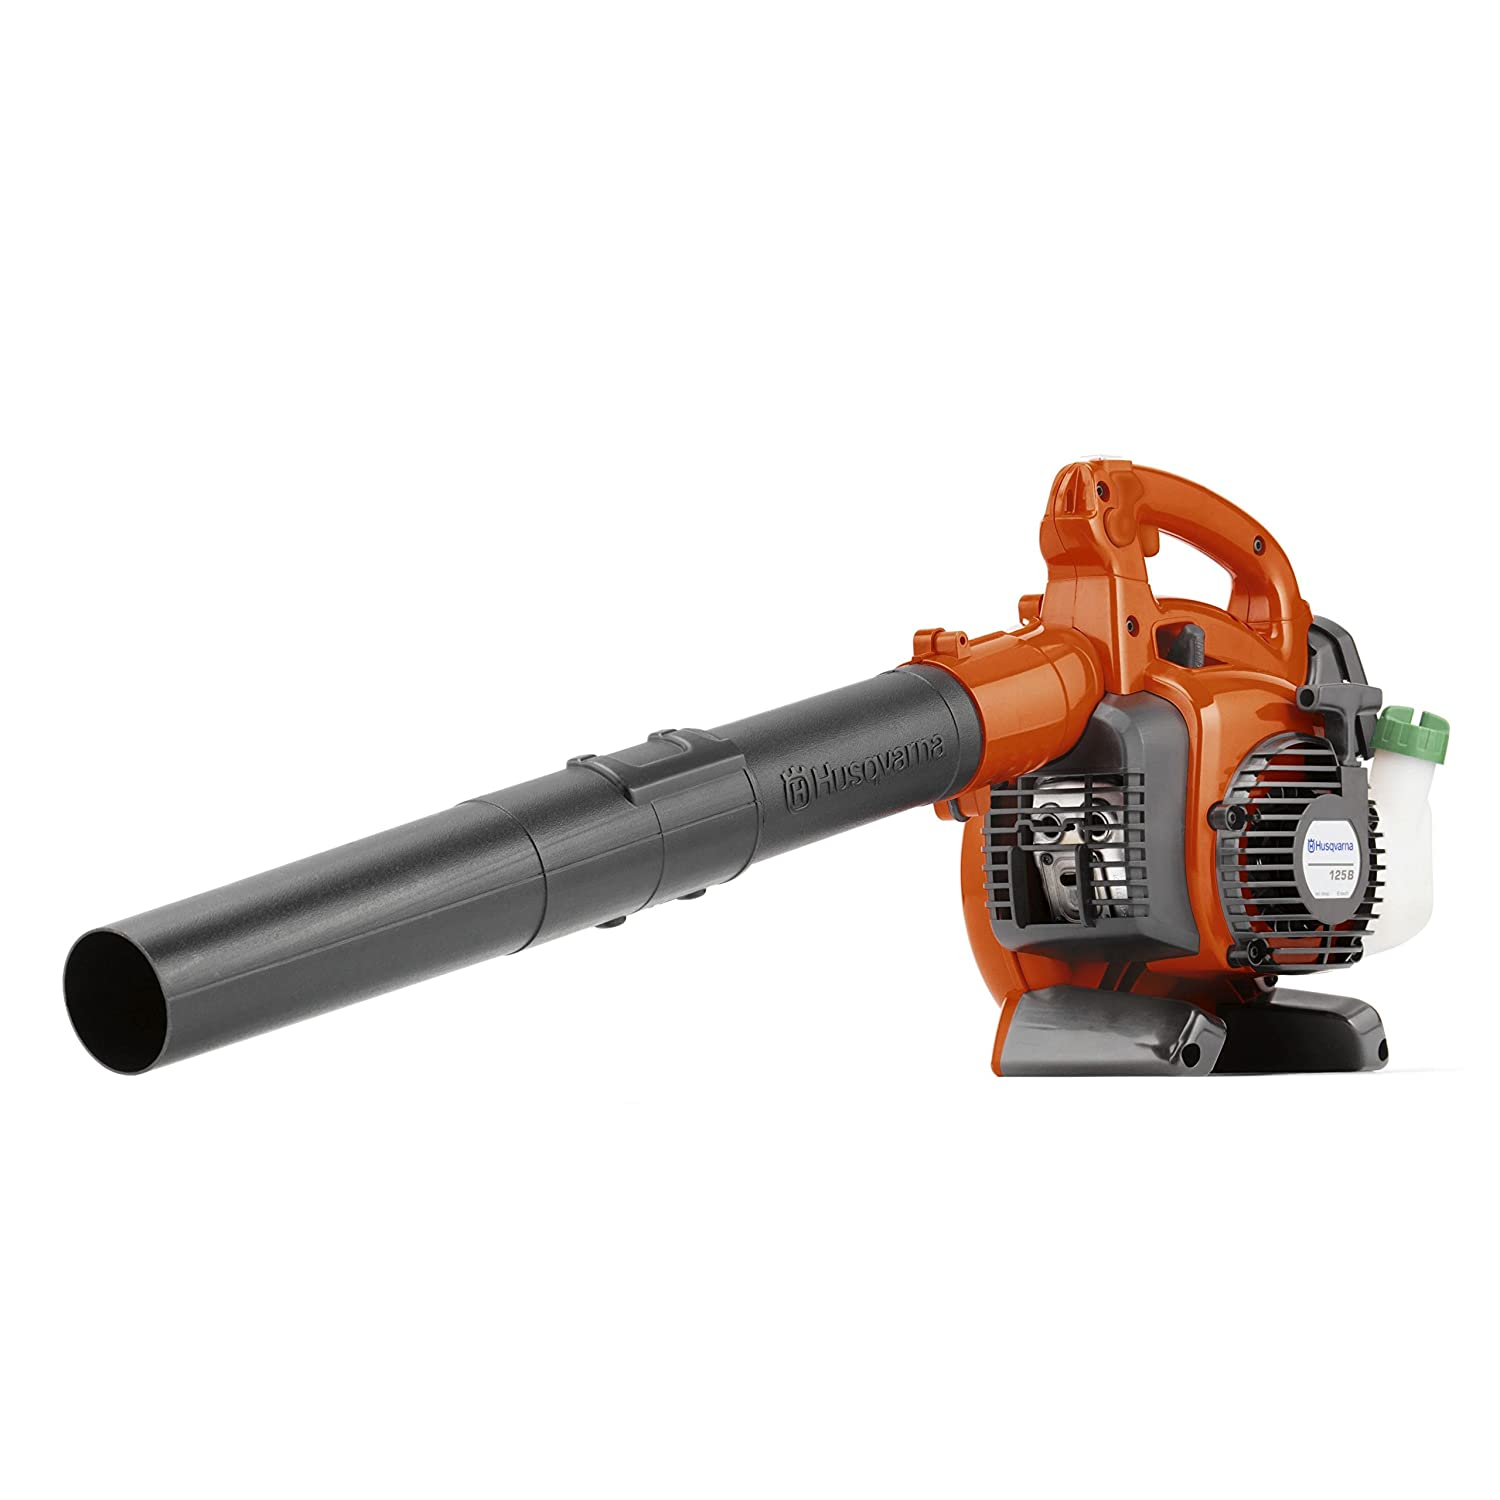 Amazoncom Leaf Blowers Vacuums Patio Lawn Garden